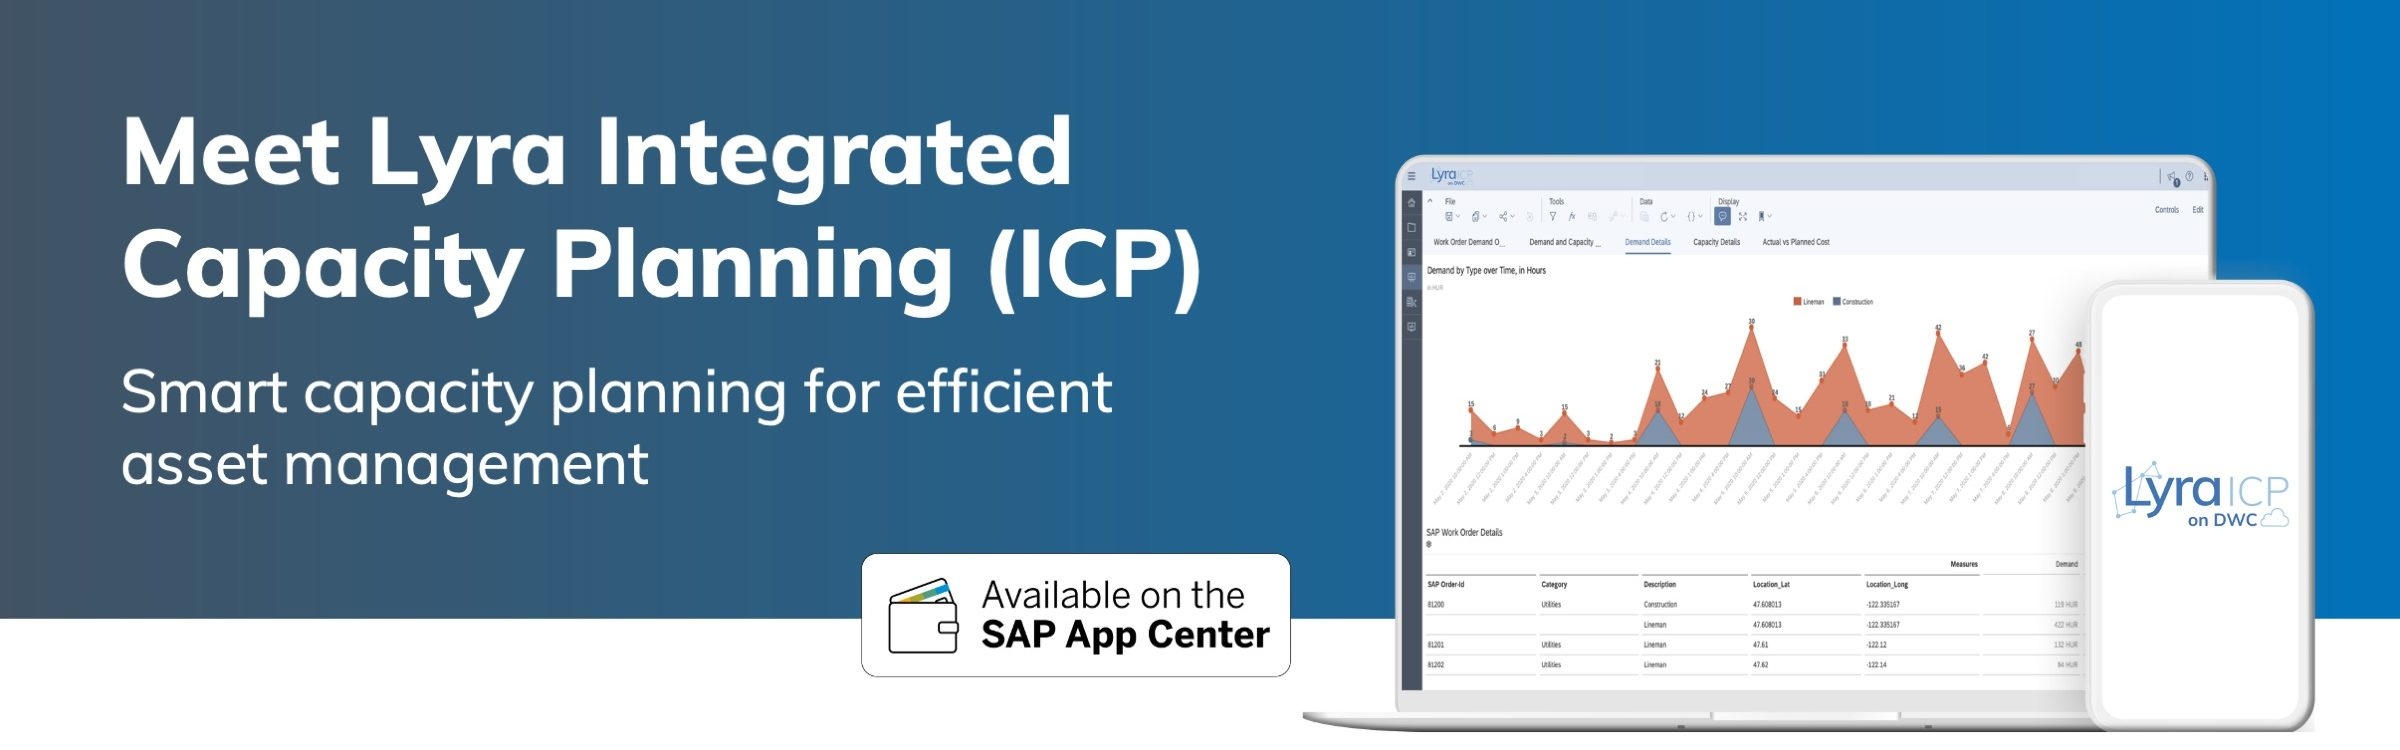 Rizing's Lyra ICP for SAP Data Warehouse Cloud Now Available on SAP App Center featured image